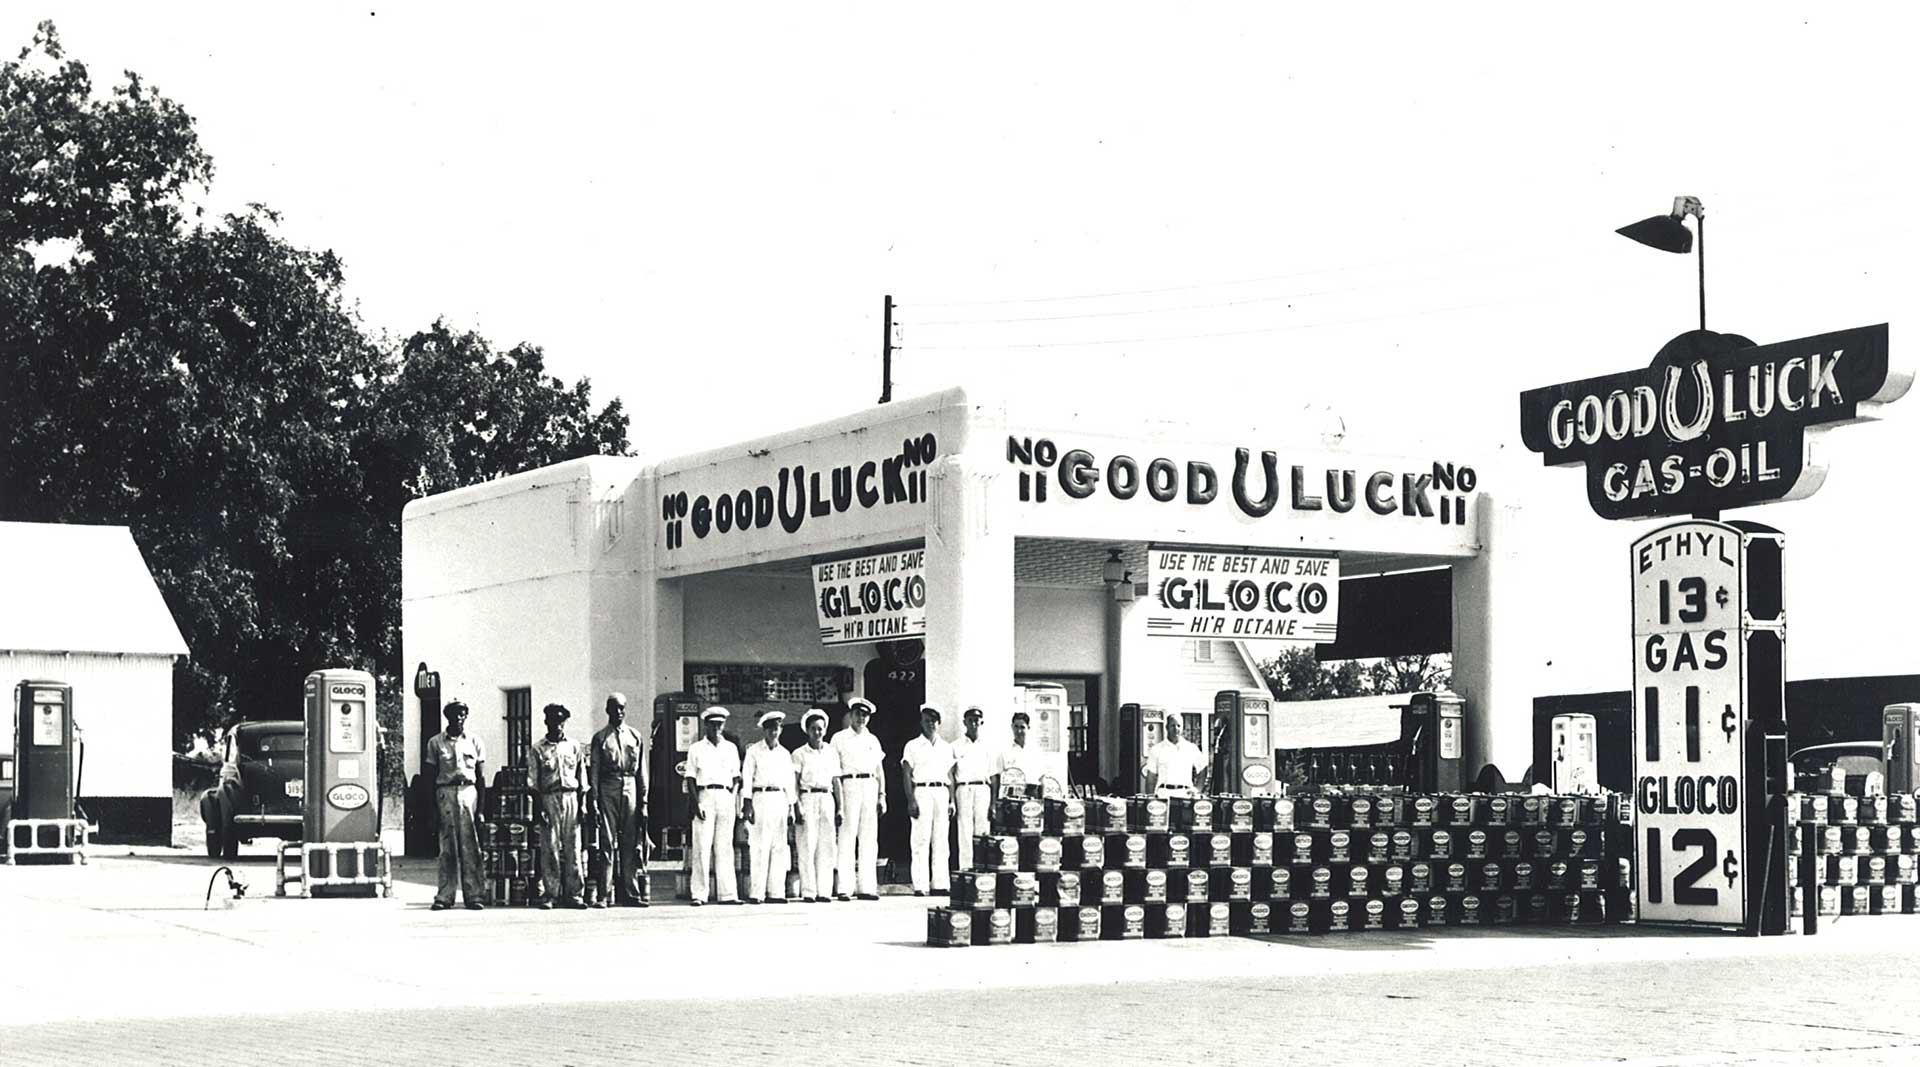 /Home_3_Good_Luck_Oil_Company_Service_GLOCO_Petroleum_Petroliana_Ethyl_Gasoline_Fuel_Signs_Collectables_Store_Museum_History_Dallas_Fort_Worth_Texas_Gas_Drepression_Era_Art_Deco_Architecture.jpg